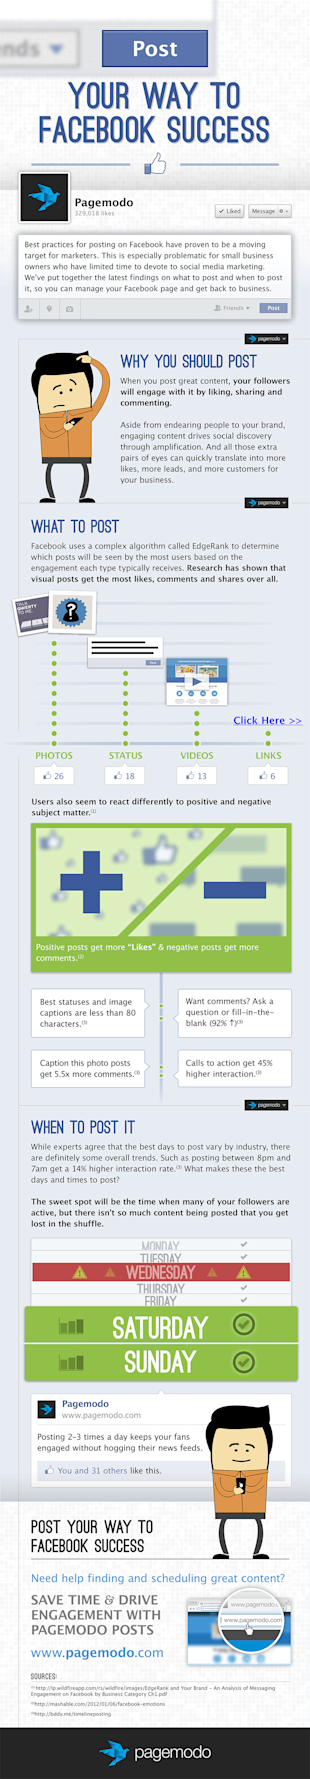 What's the Best Type of Post for Facebook? [Infographic] image postsinfographic